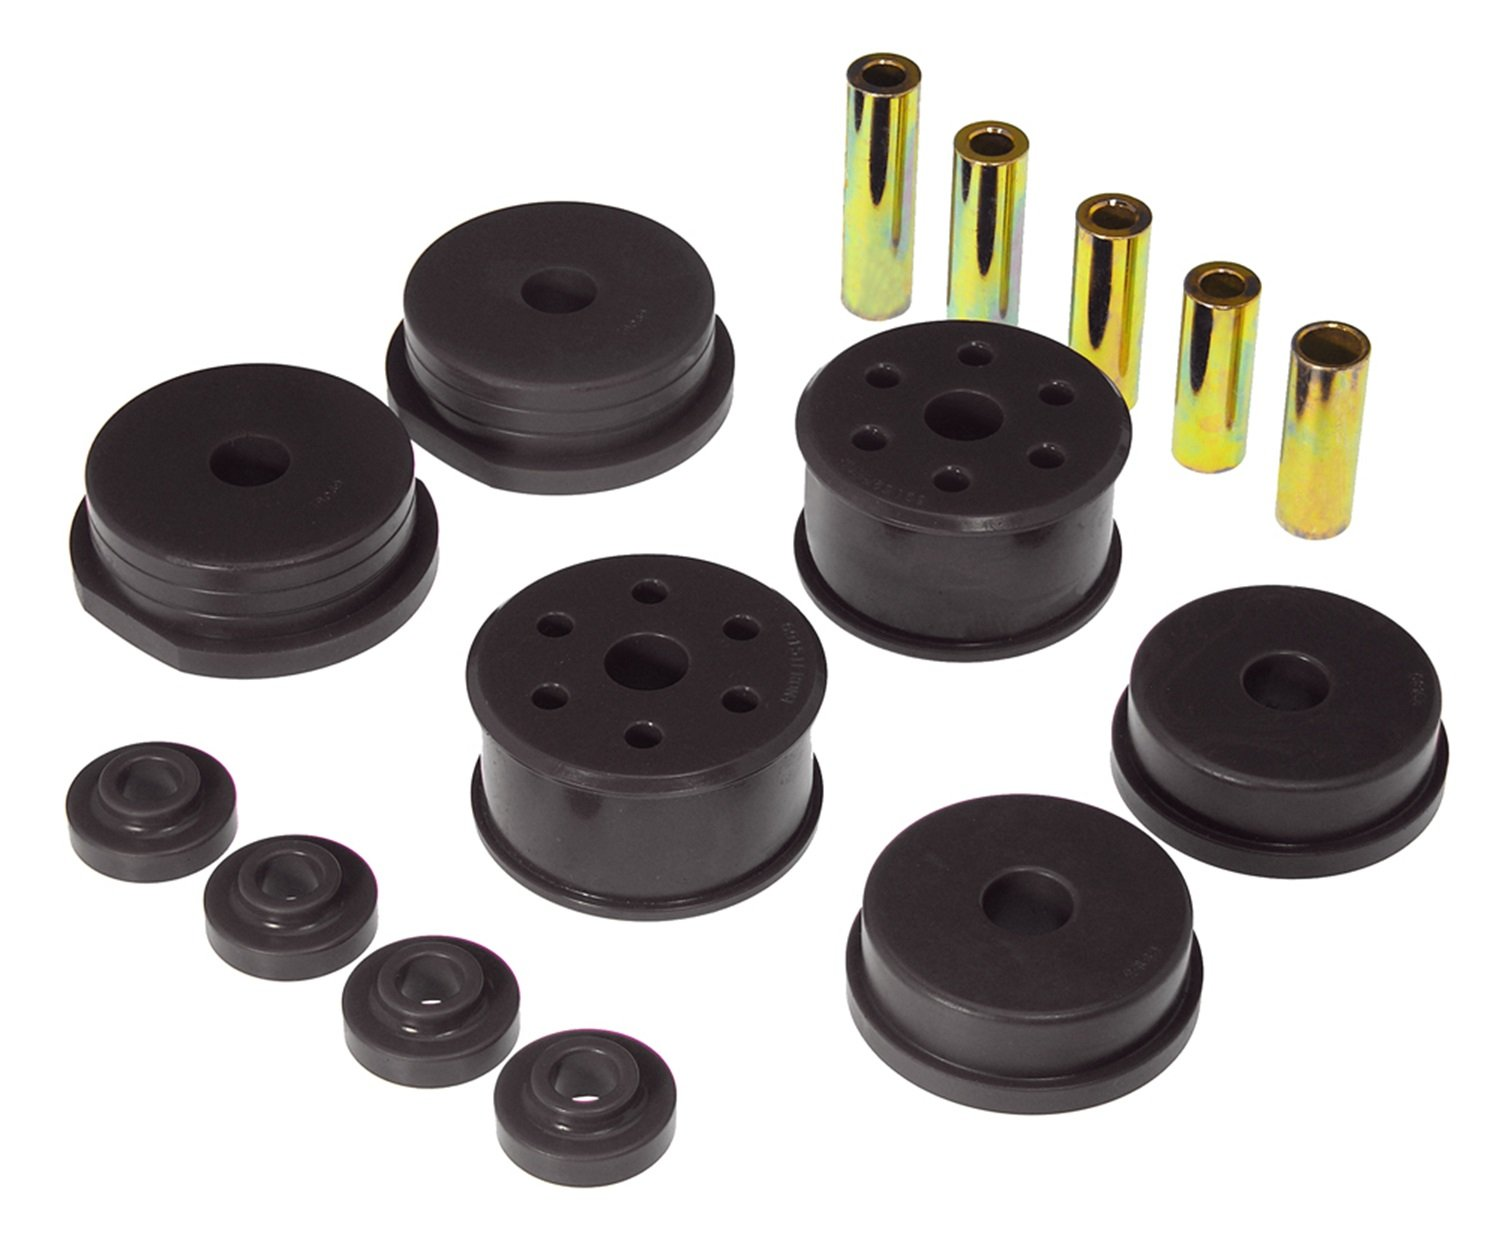 Prothane 13-1903-BL Black Motor and Transmission Mount Insert Kit by Prothane